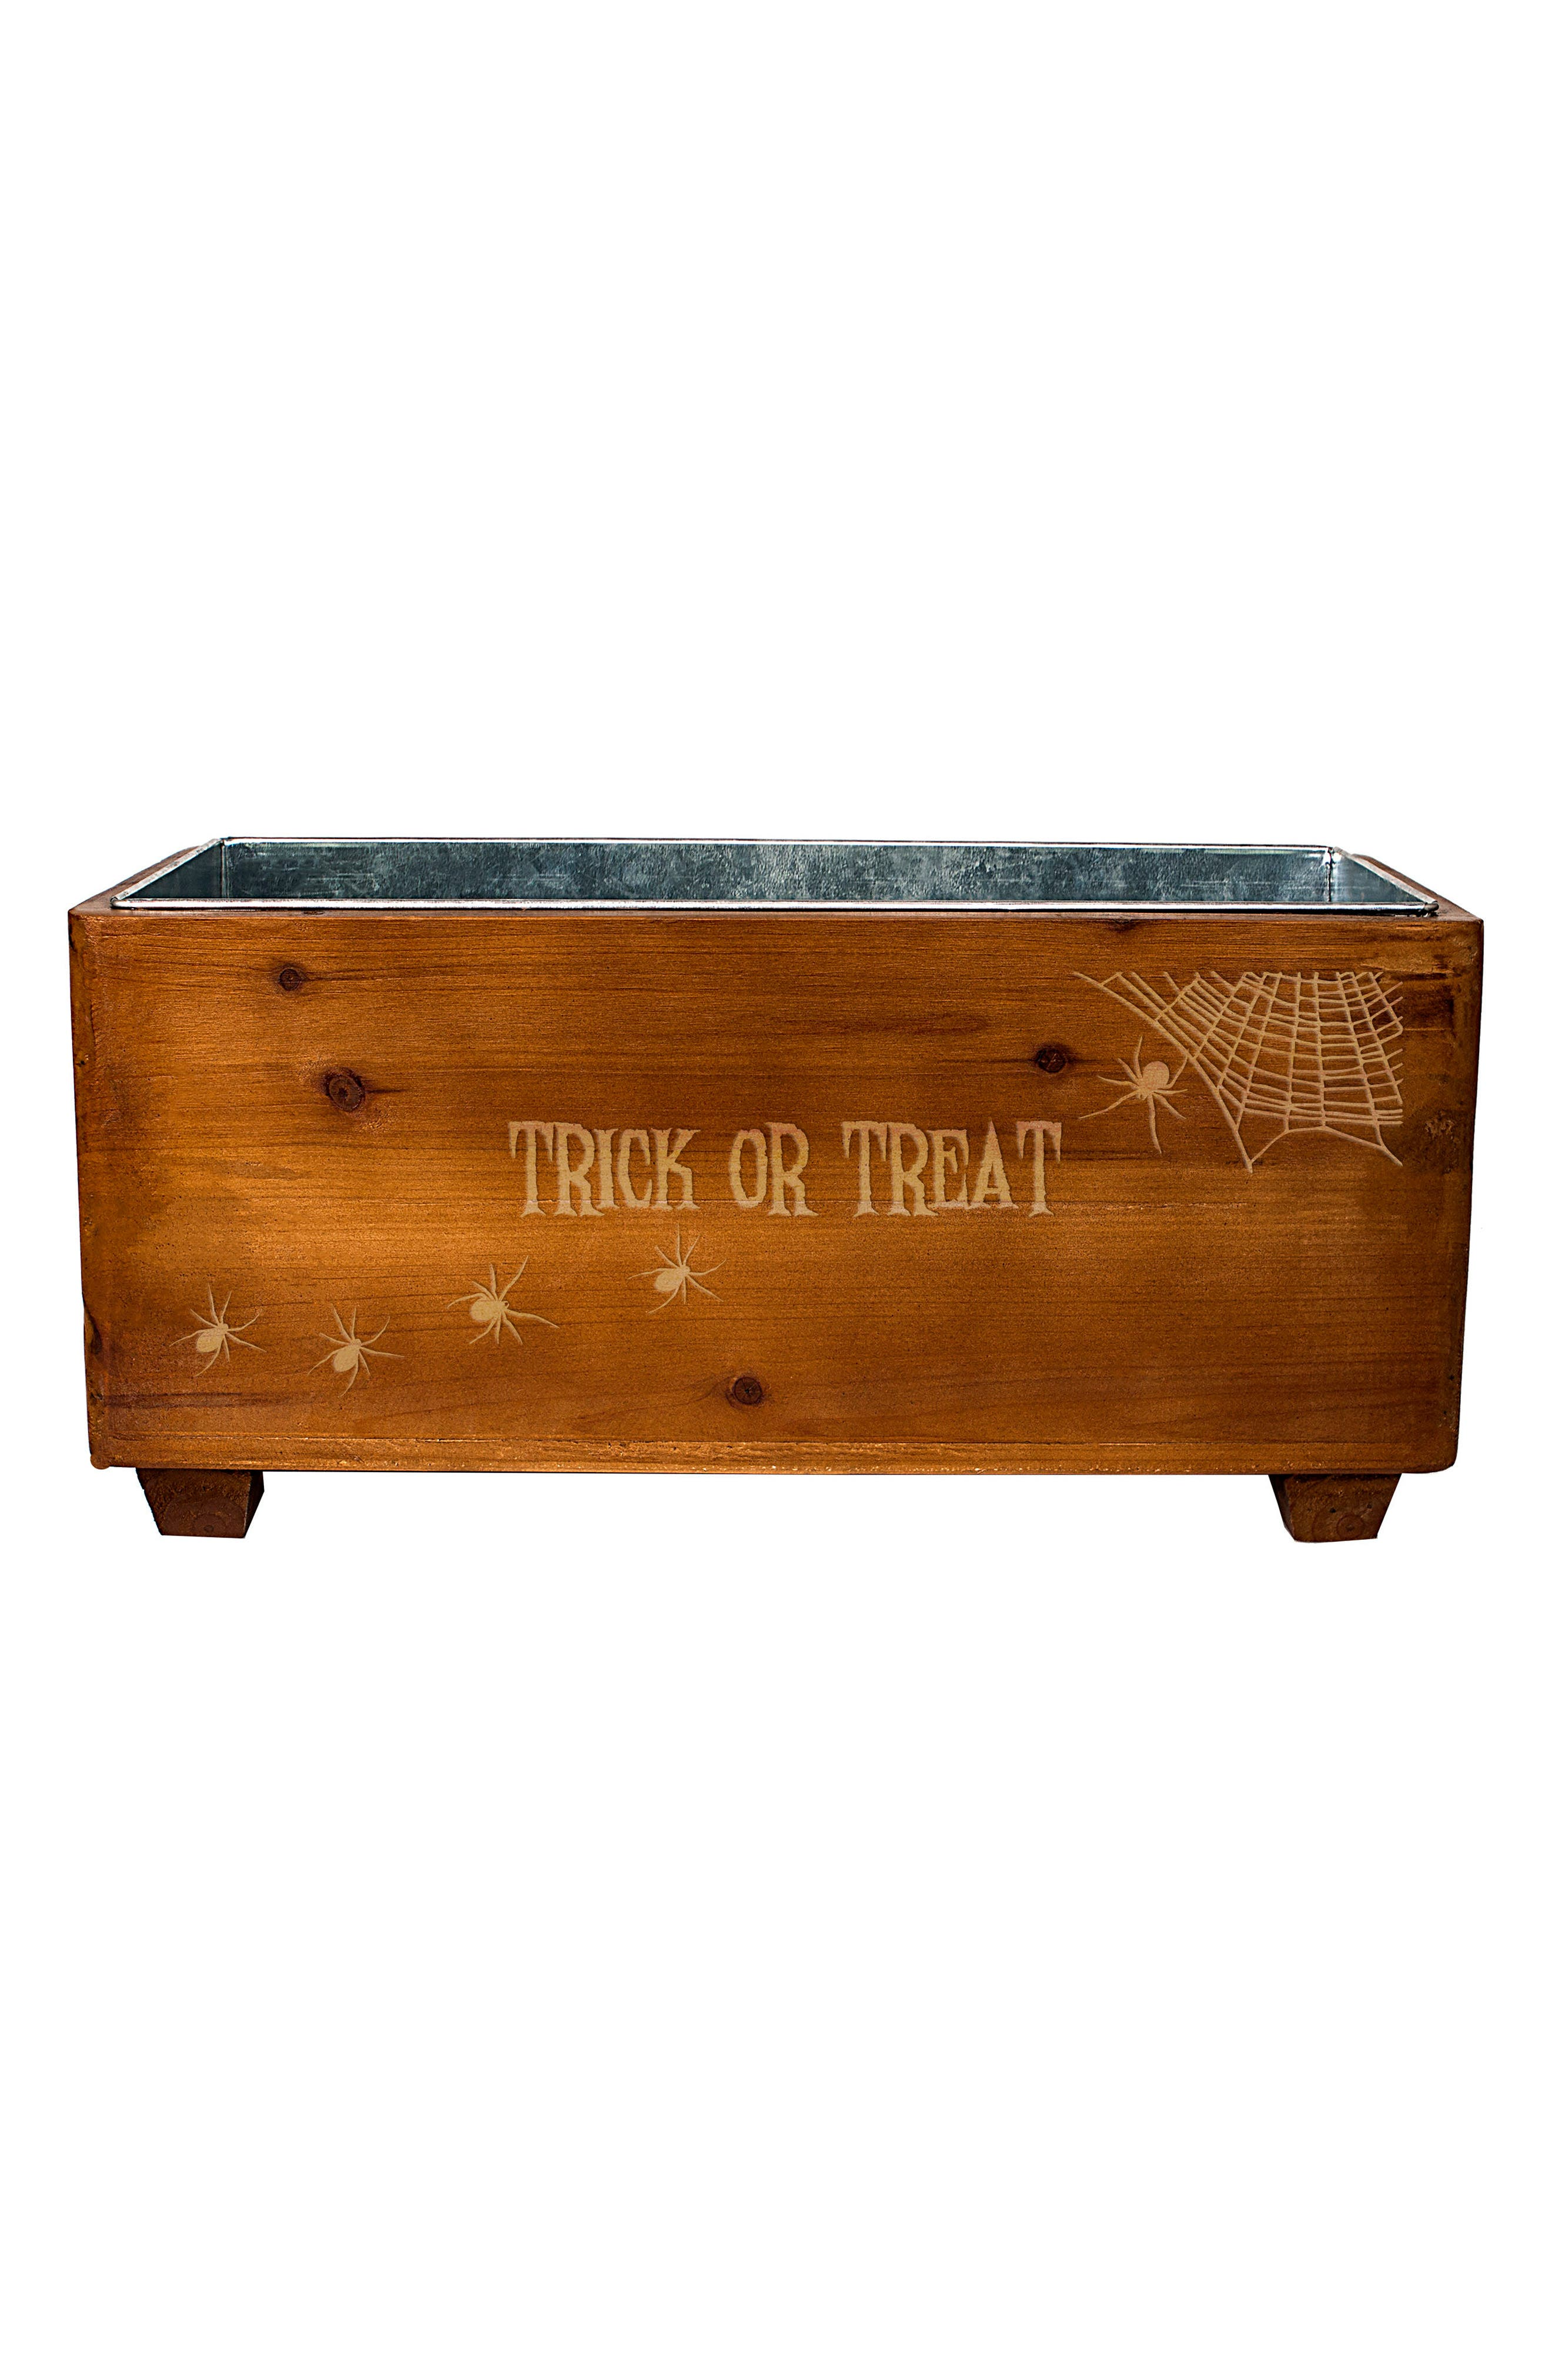 Main Image - Cathy's Concepts Trick or Treat Wood Wine Trough